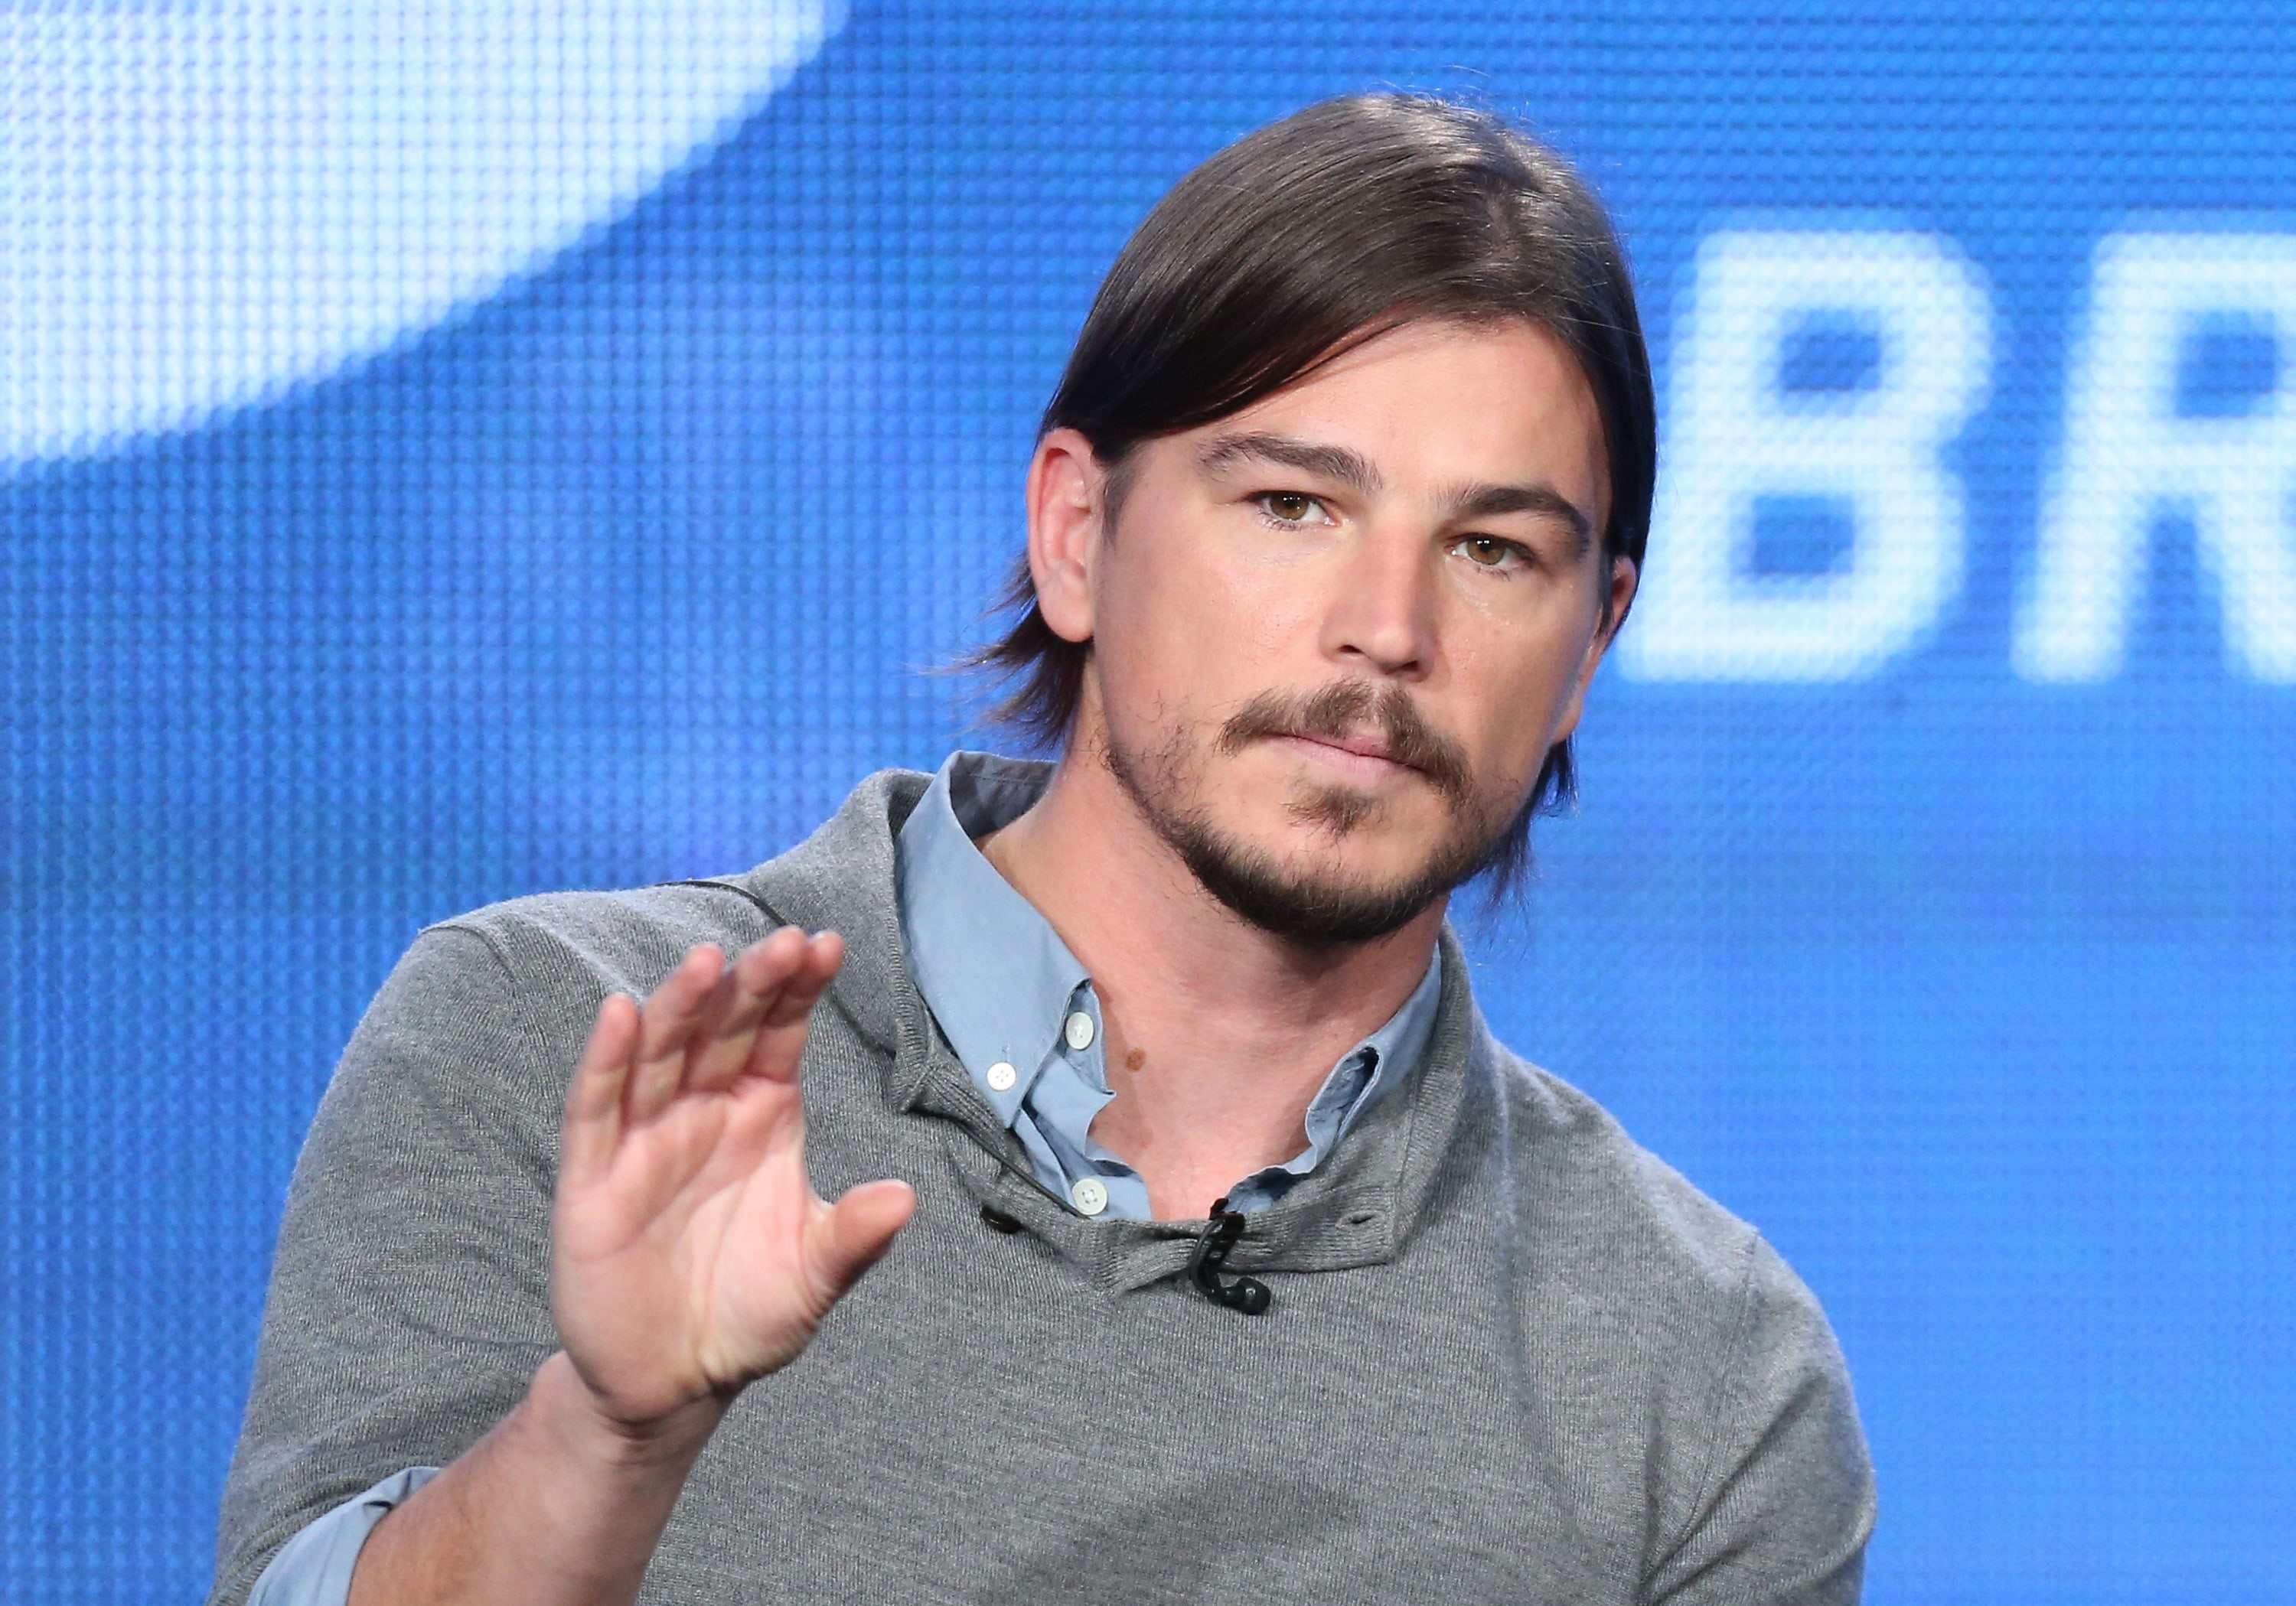 Josh Hartnett Wallpapers hd